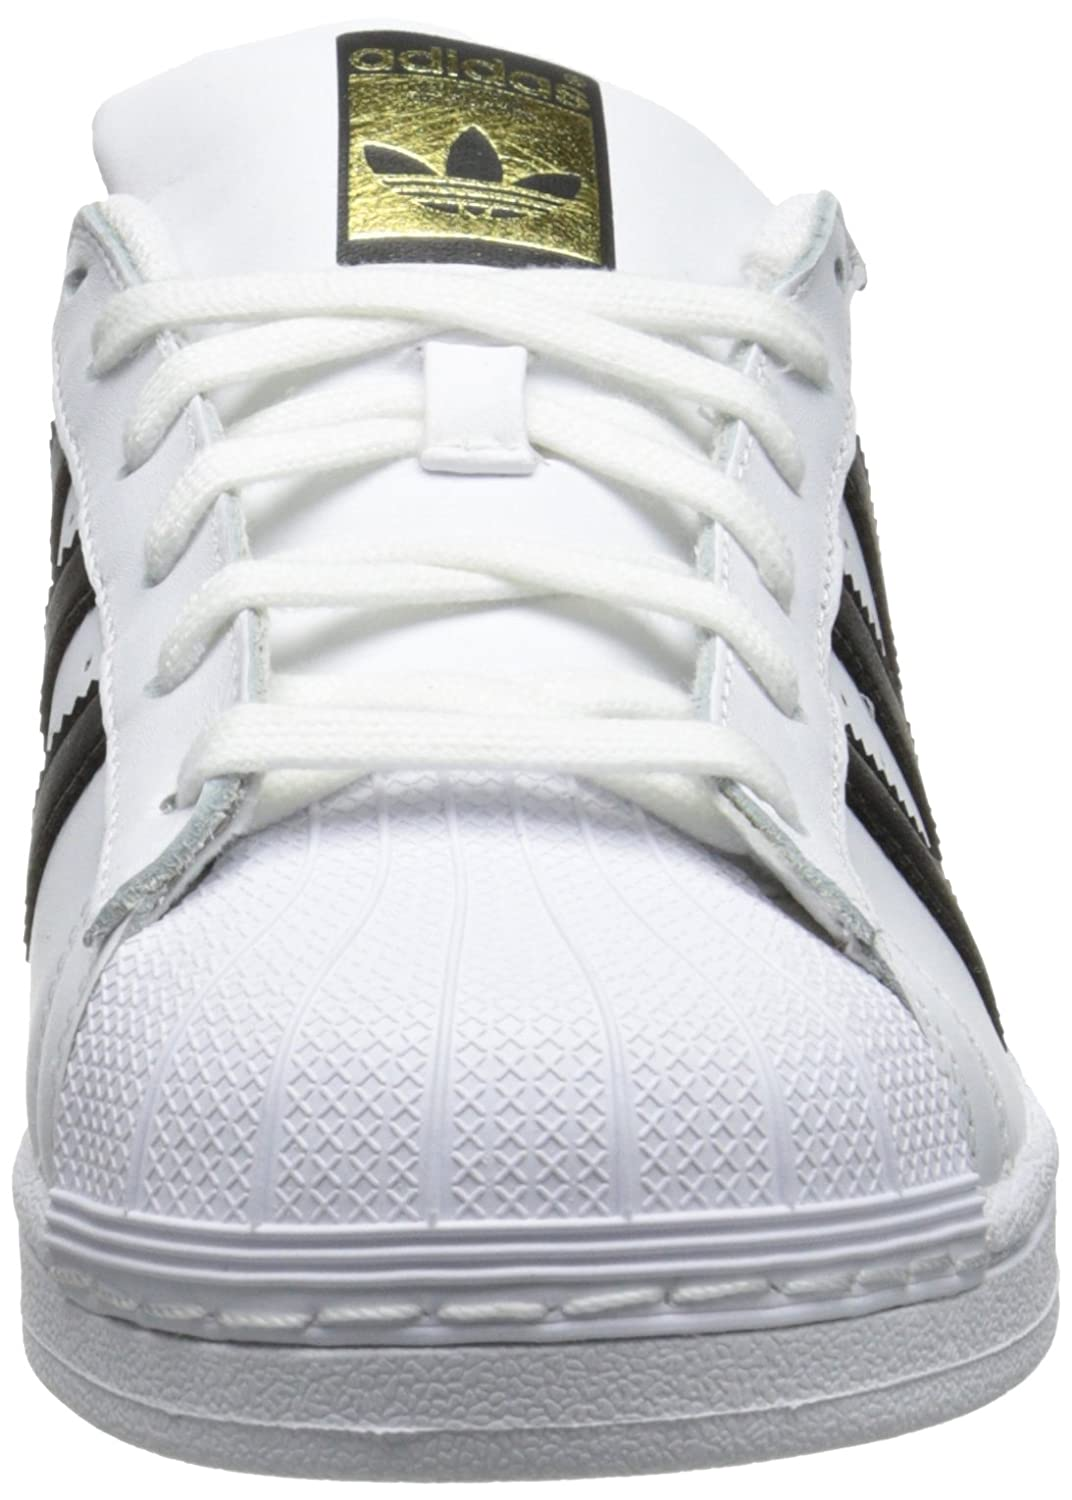 ece393fe679 Adidas ORIGINALS Women s Superstar Shoe